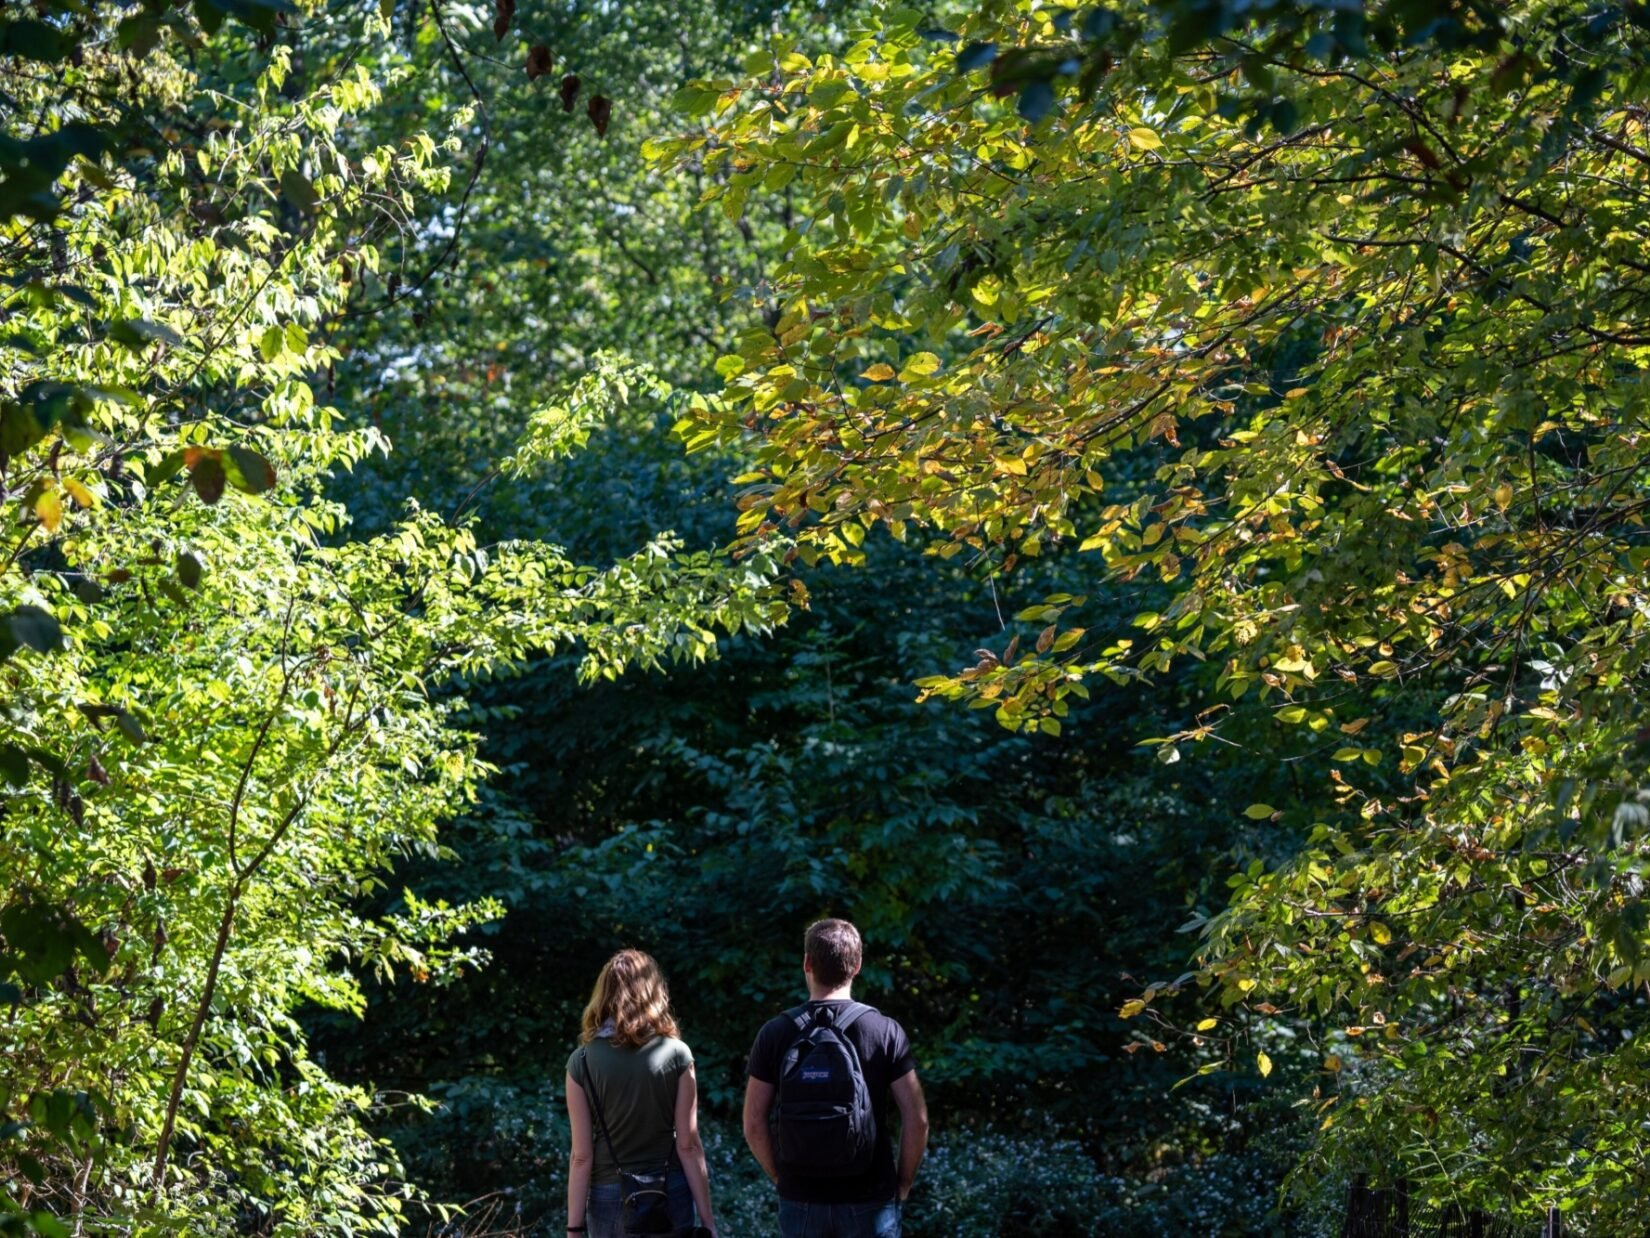 A couple under a canopy of sunlit trees in the North Woods